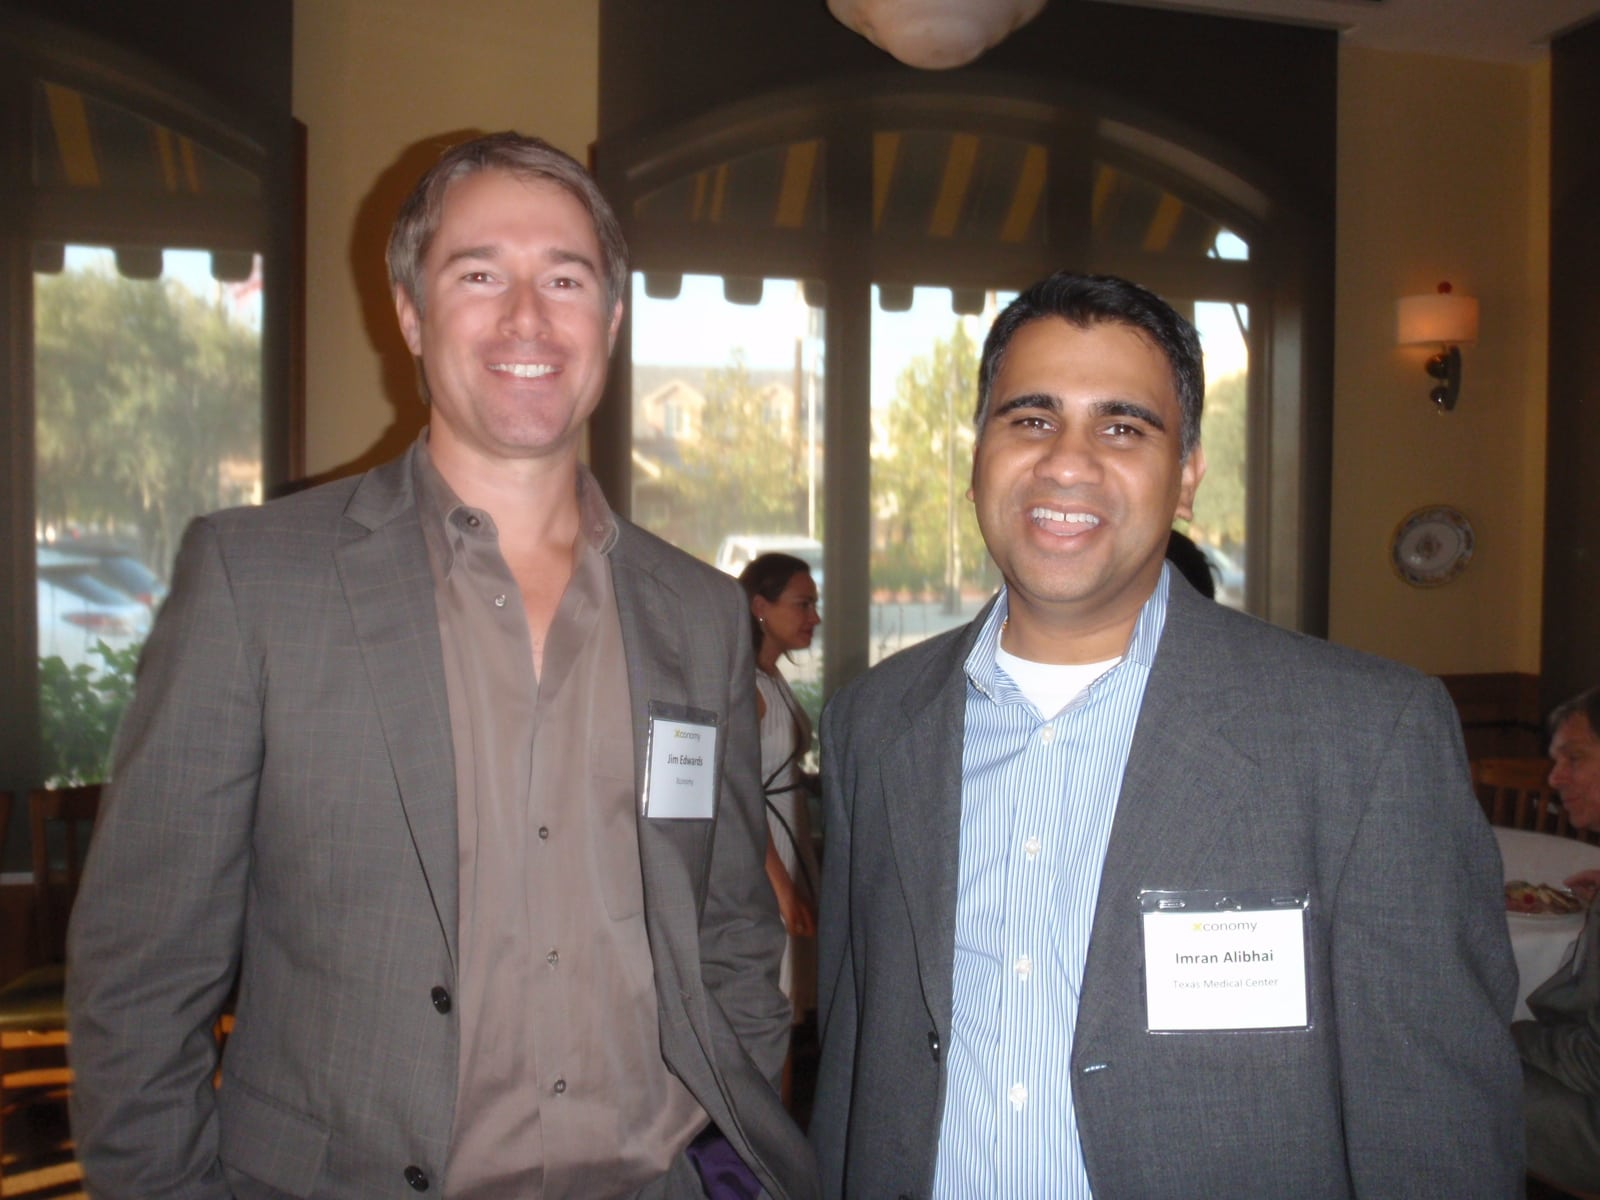 Jim Edwards, Imran Alibhai